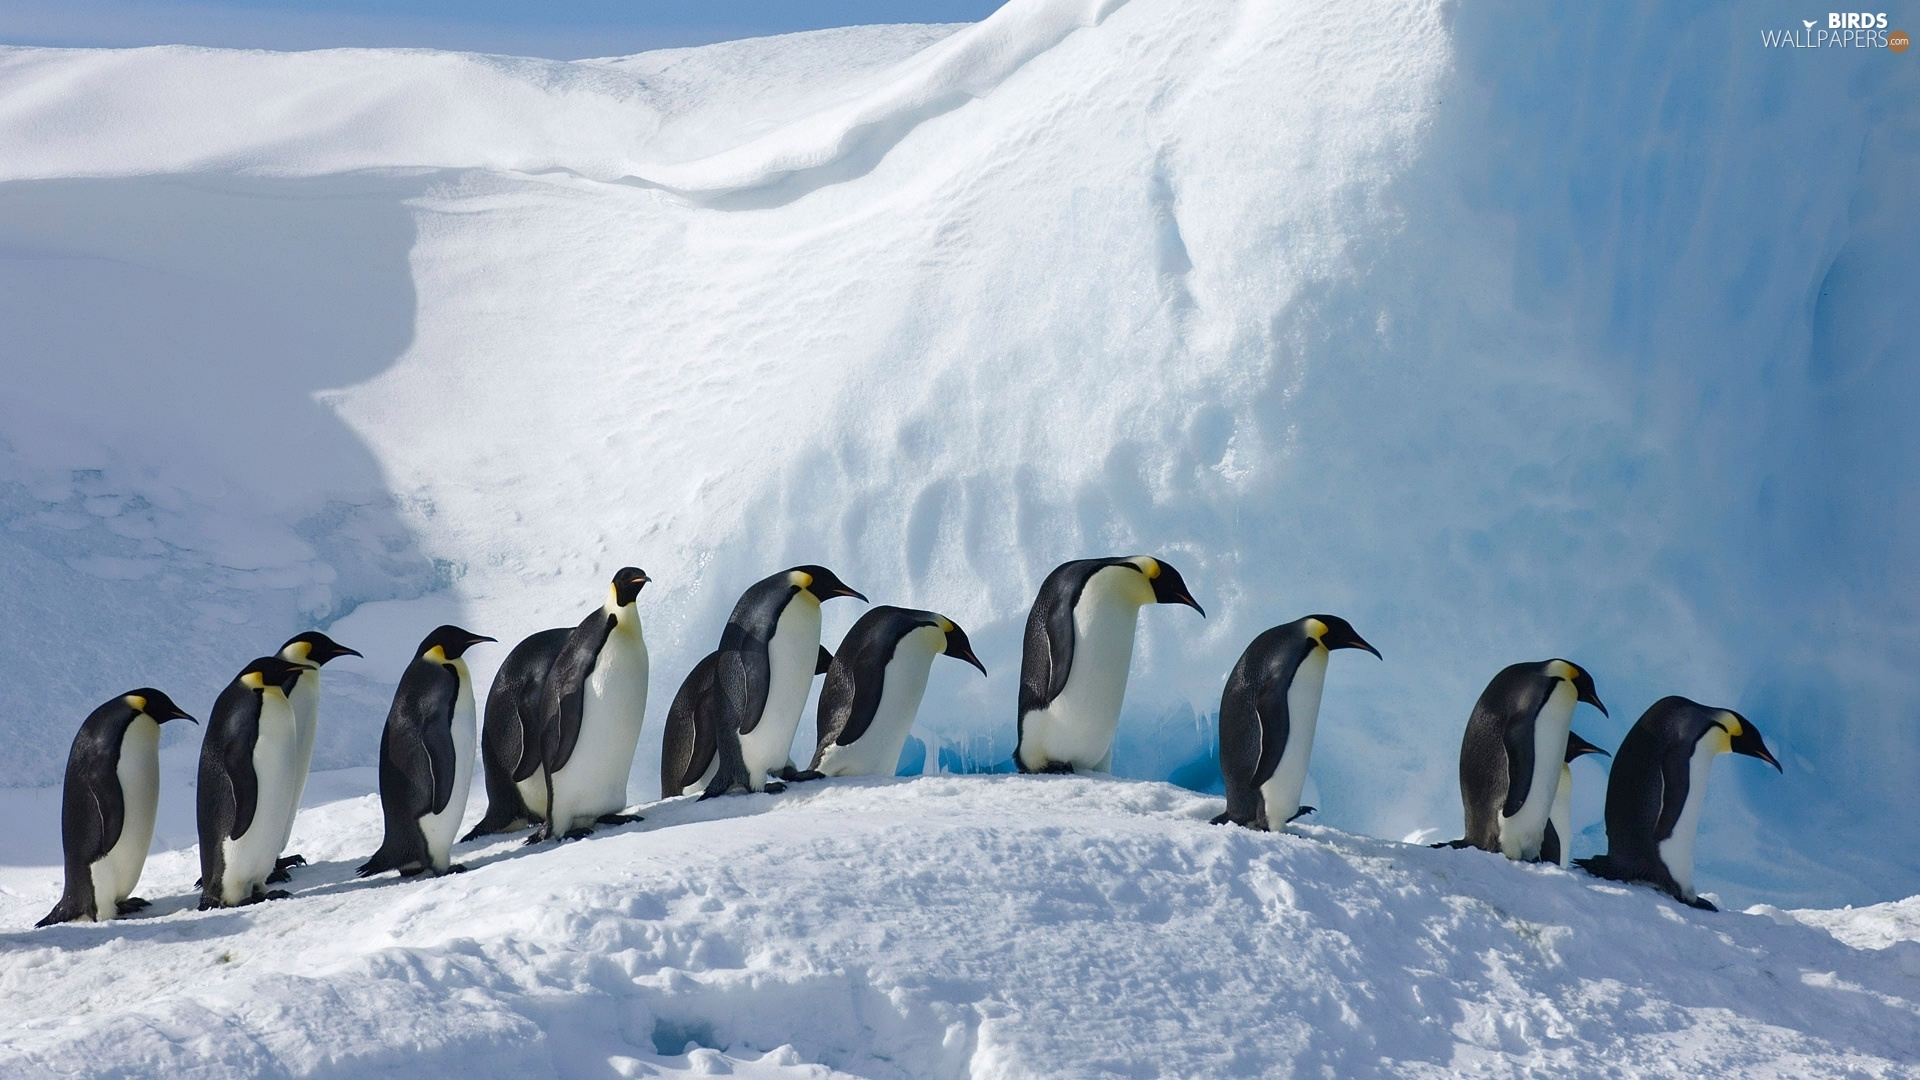 winter, birds, Emperor Penguins, snow